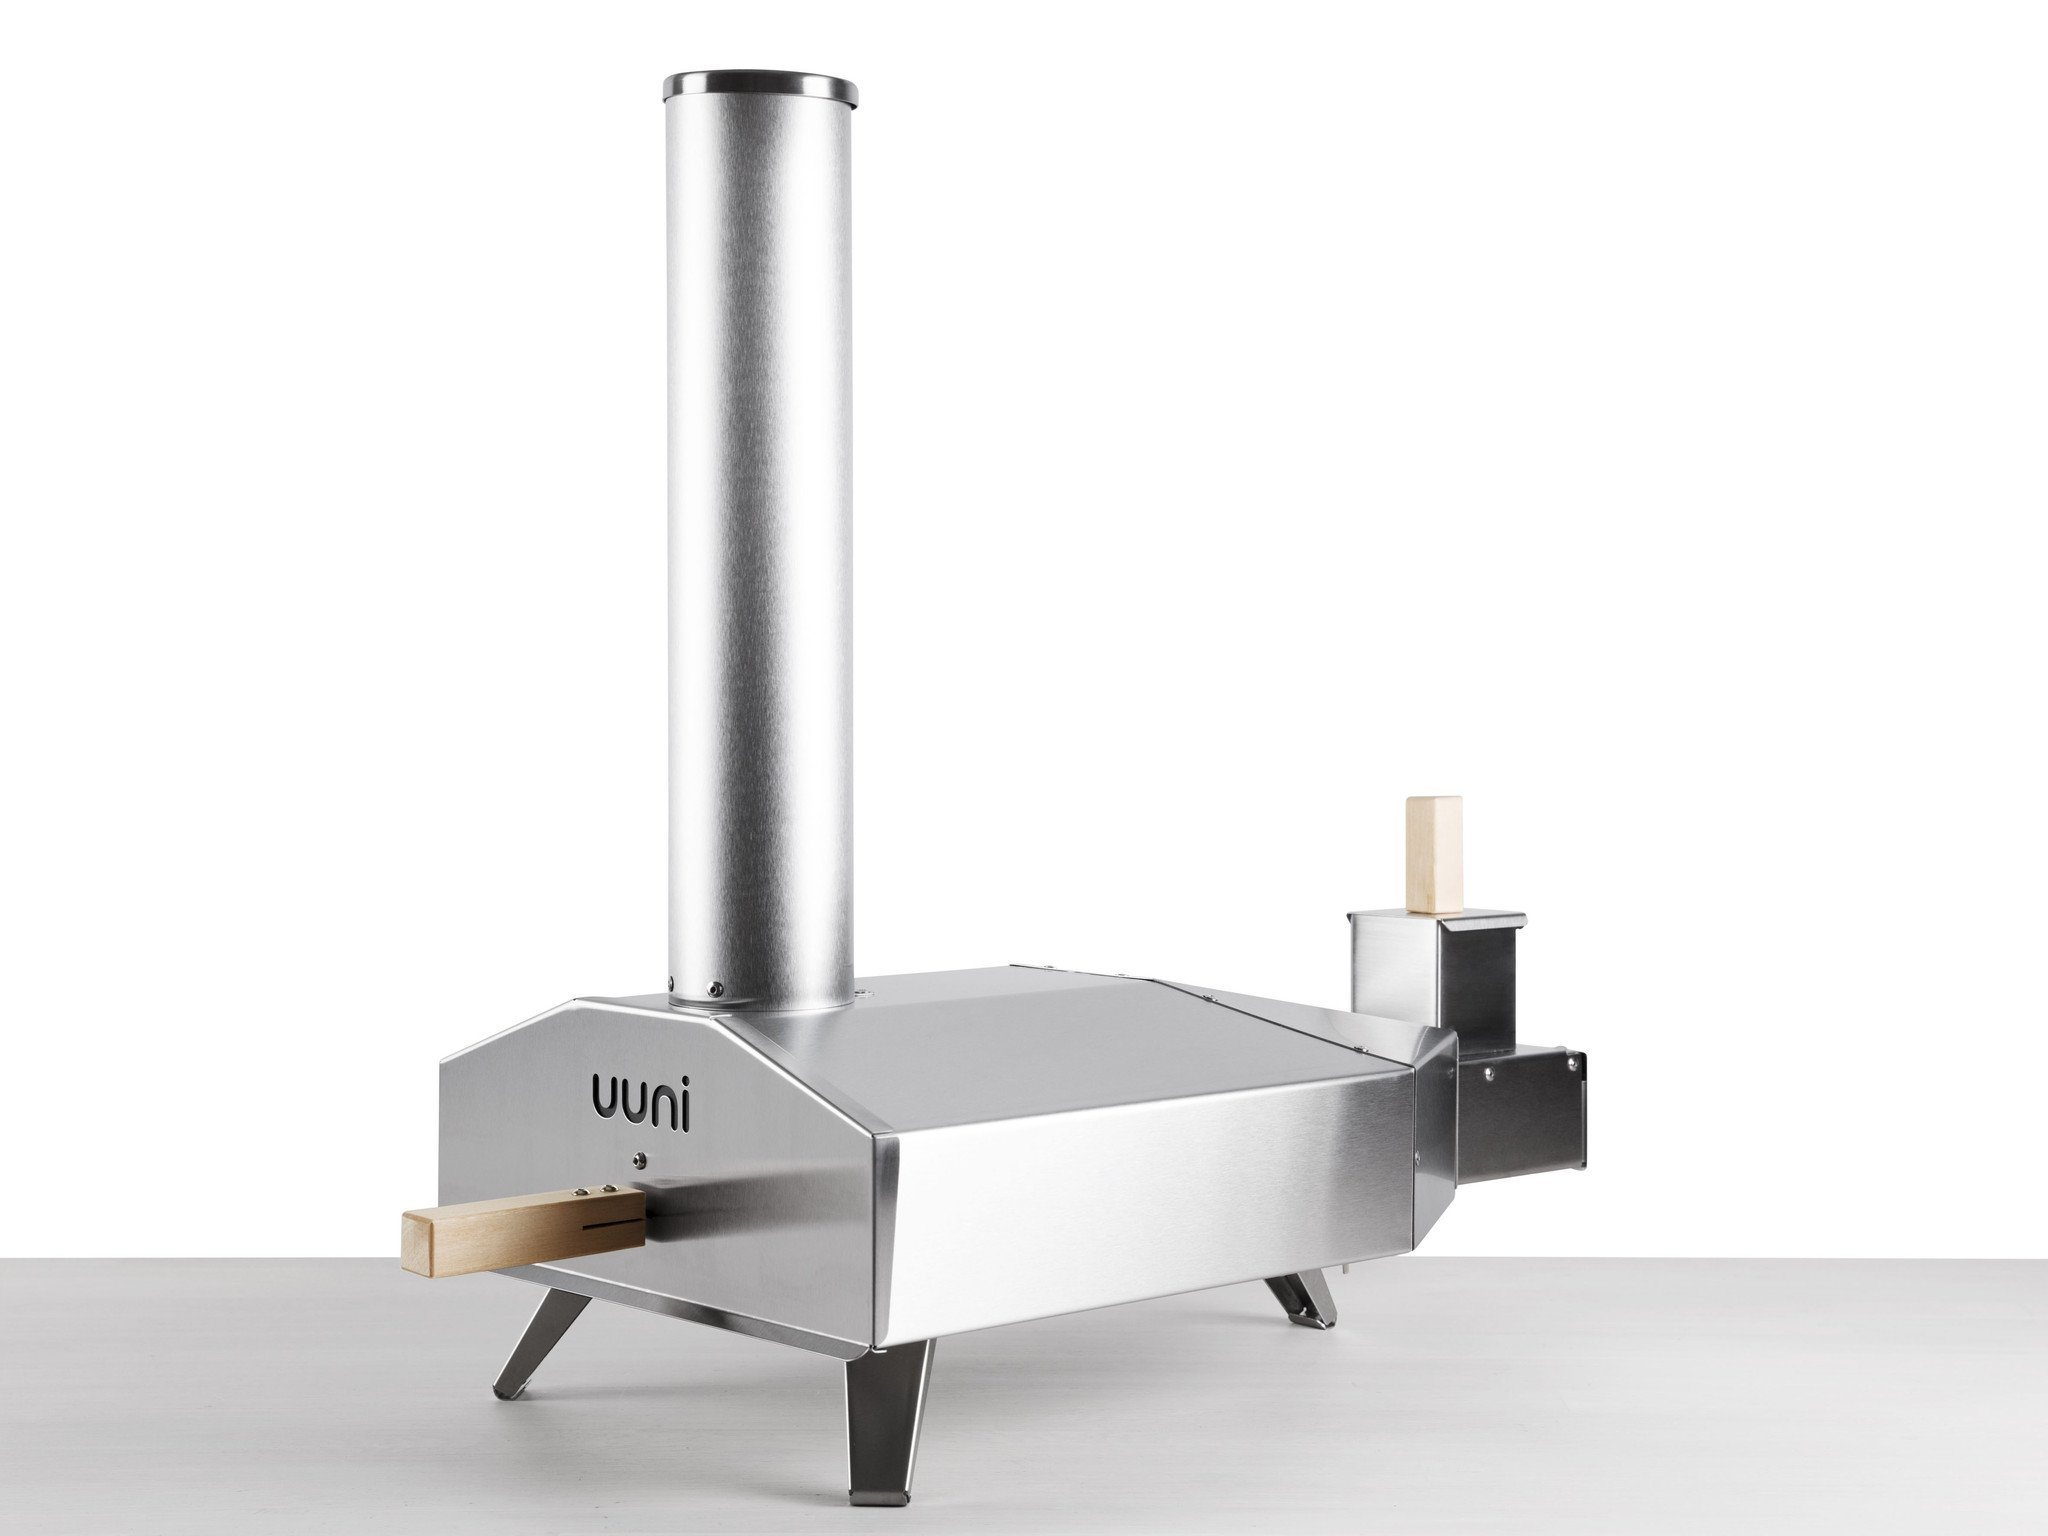 uuni 3 pizza oven